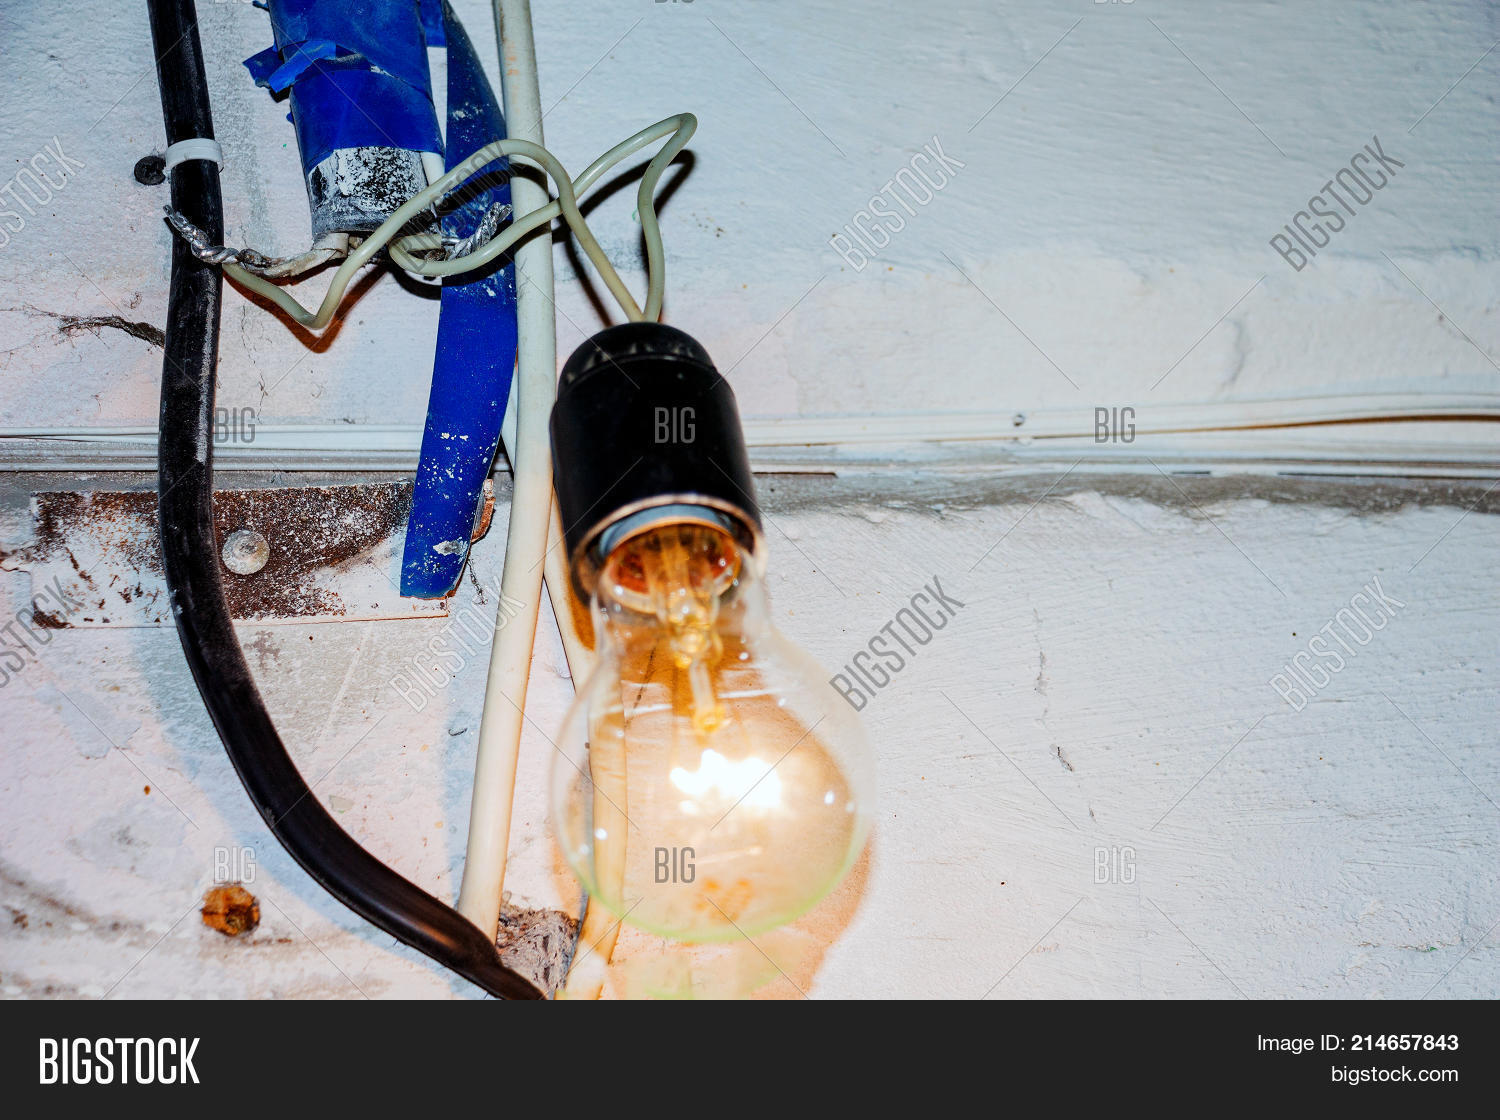 Bad Electrical Wiring Image Photo Free Trial Bigstock Connection Dangerous With An Incandescent Lamp